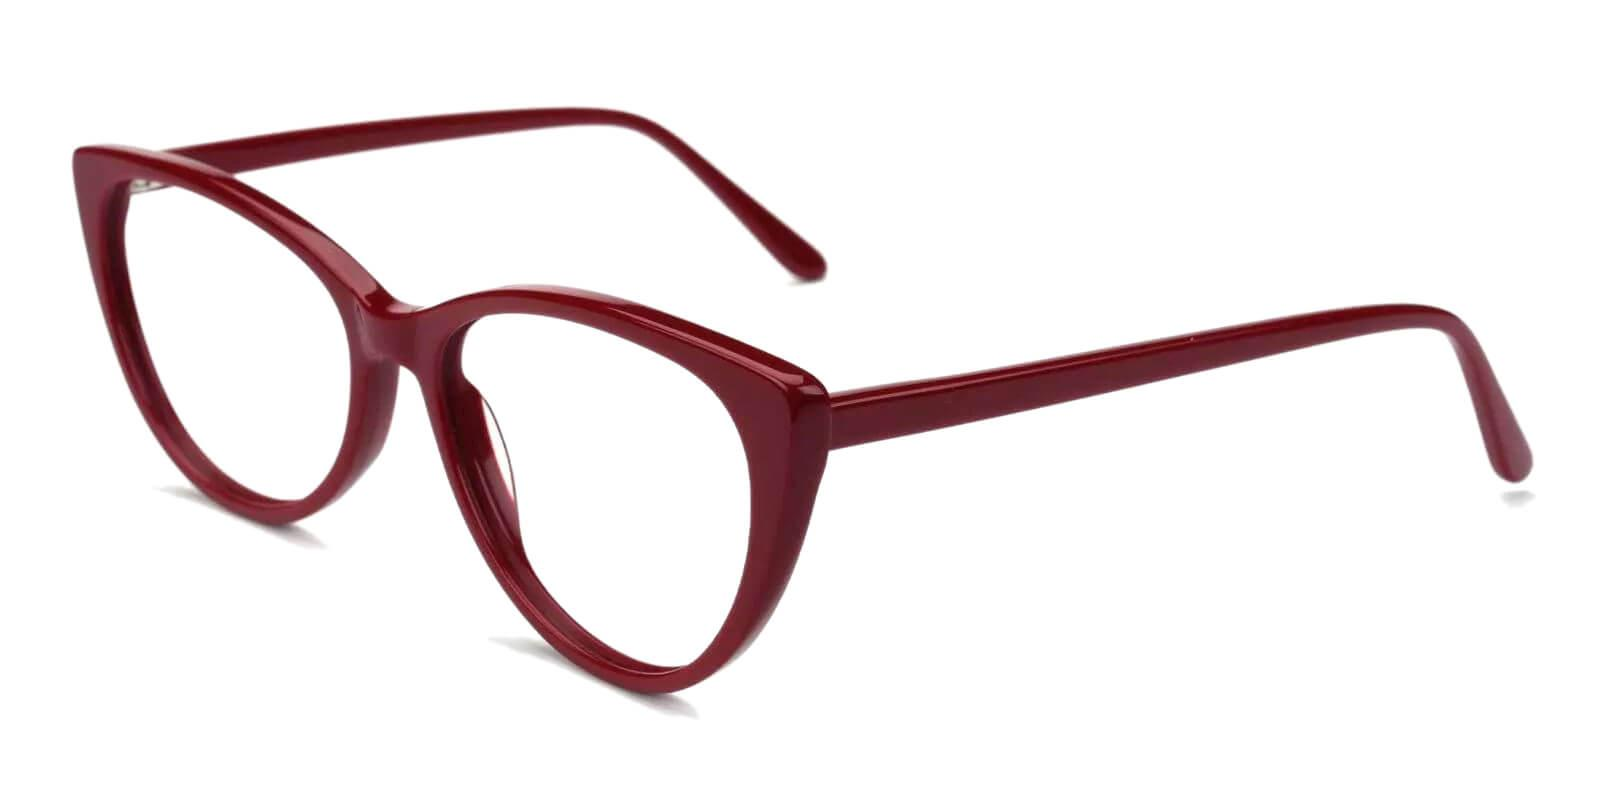 Traci Red Acetate Eyeglasses , Fashion , SpringHinges , UniversalBridgeFit Frames from ABBE Glasses